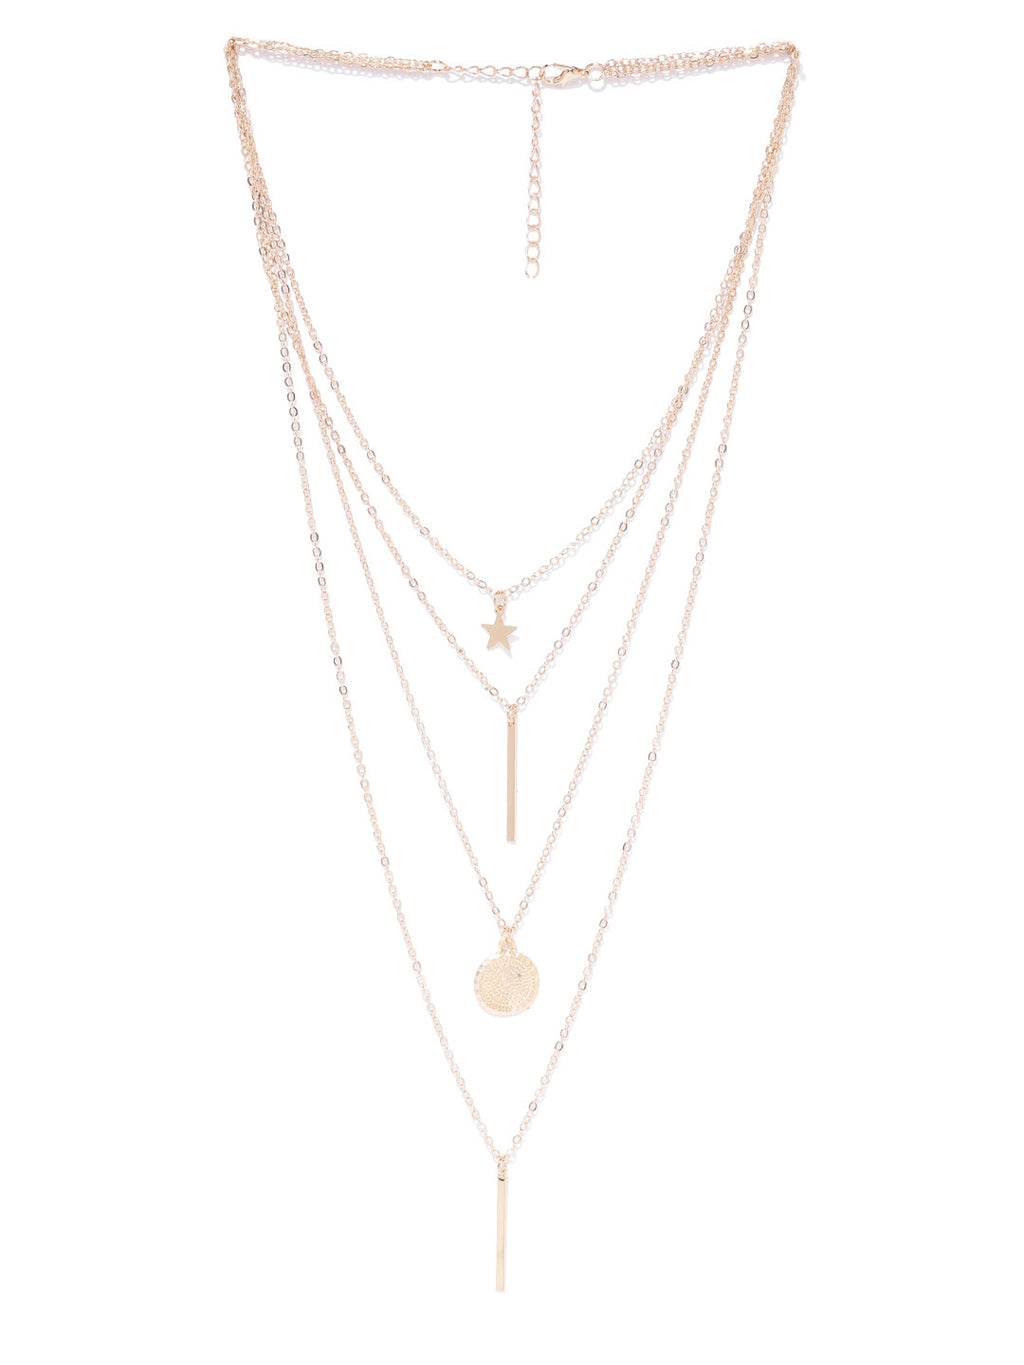 MULTI-LAYERED MINIMALIST NECKLACE